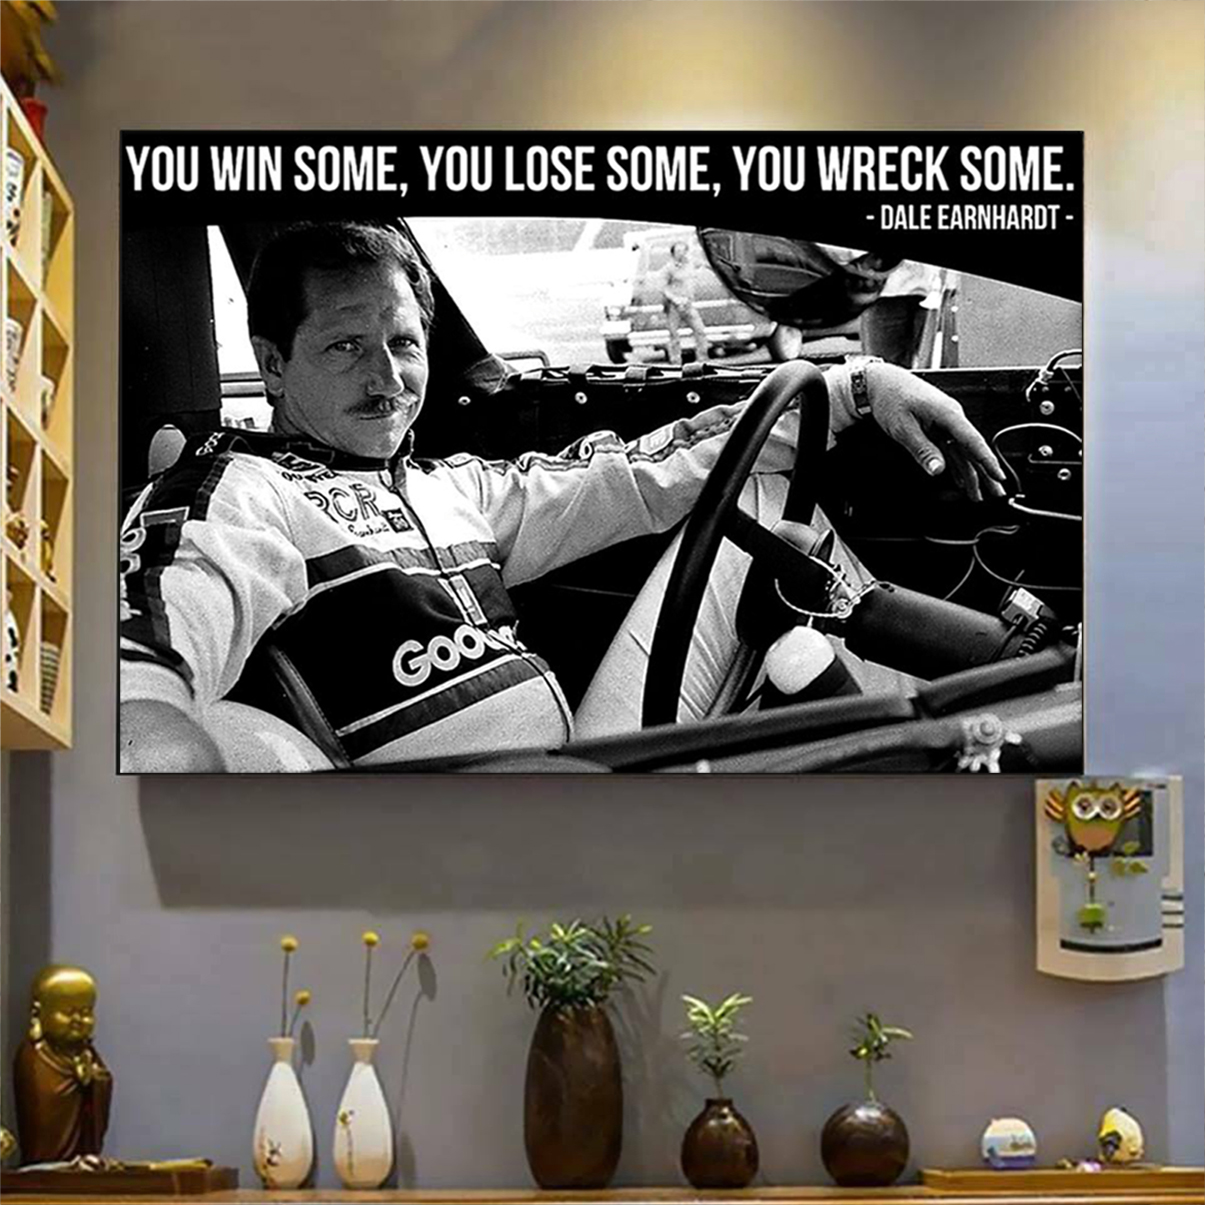 Dale earnhardt you win some you lose some you wreck some poster A3